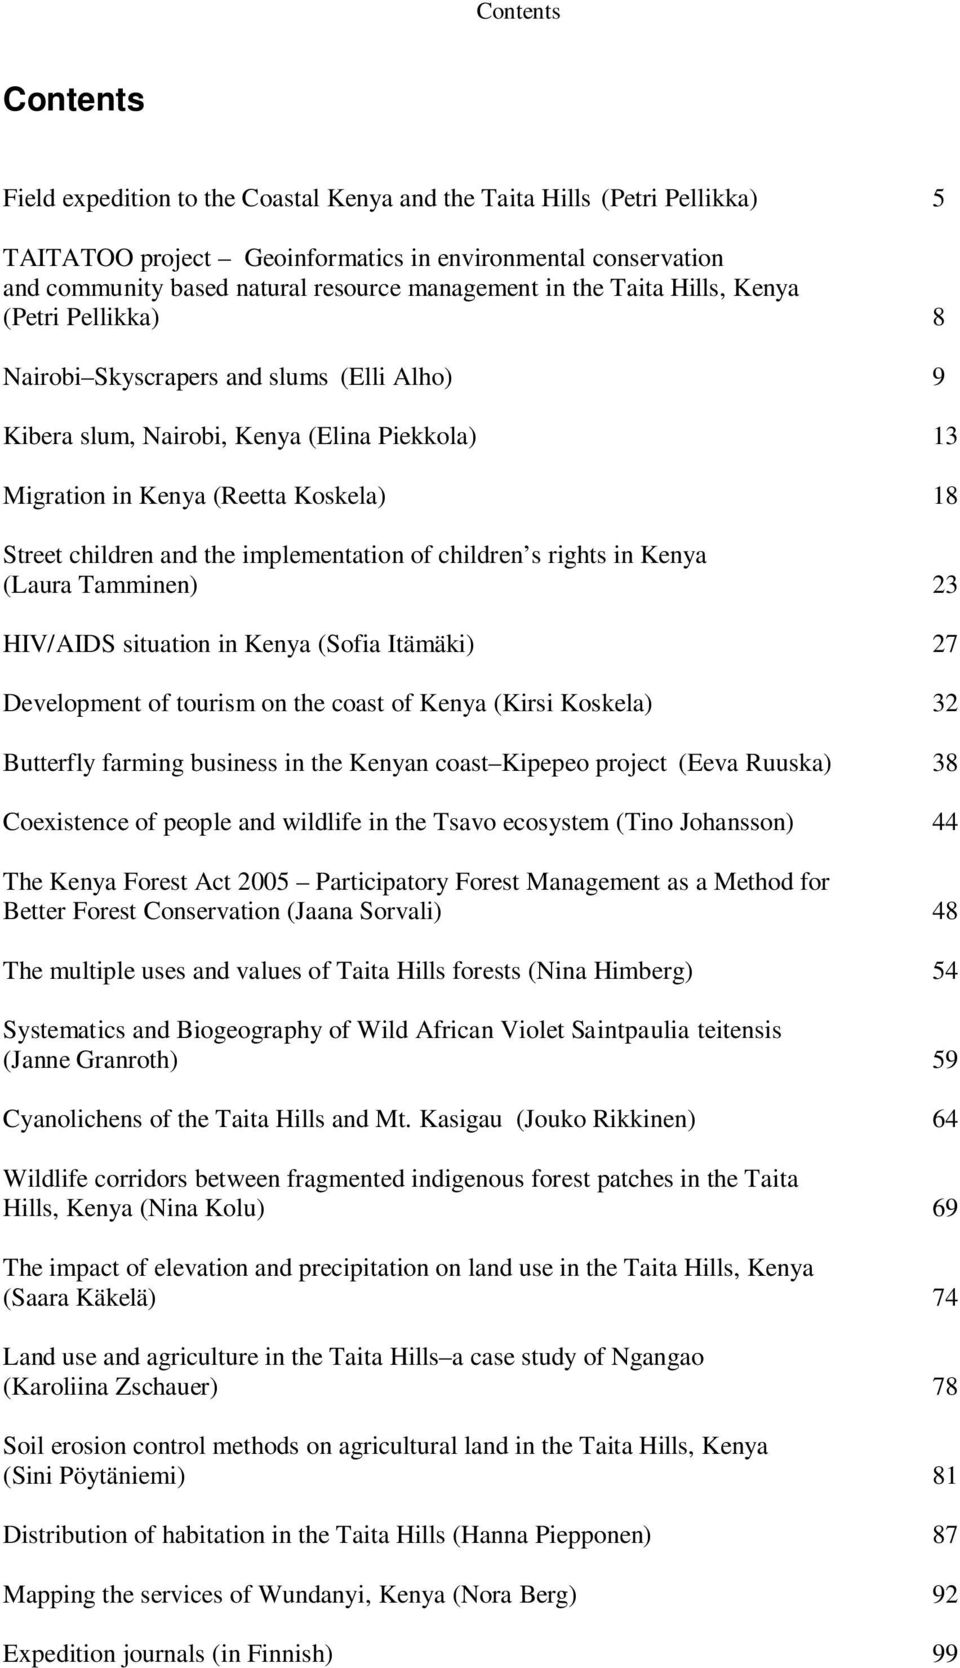 children and the implementation of children s rights in Kenya (Laura Tamminen) 23 HIV/AIDS situation in Kenya (Sofia Itämäki) 27 Development of tourism on the coast of Kenya (Kirsi Koskela) 32